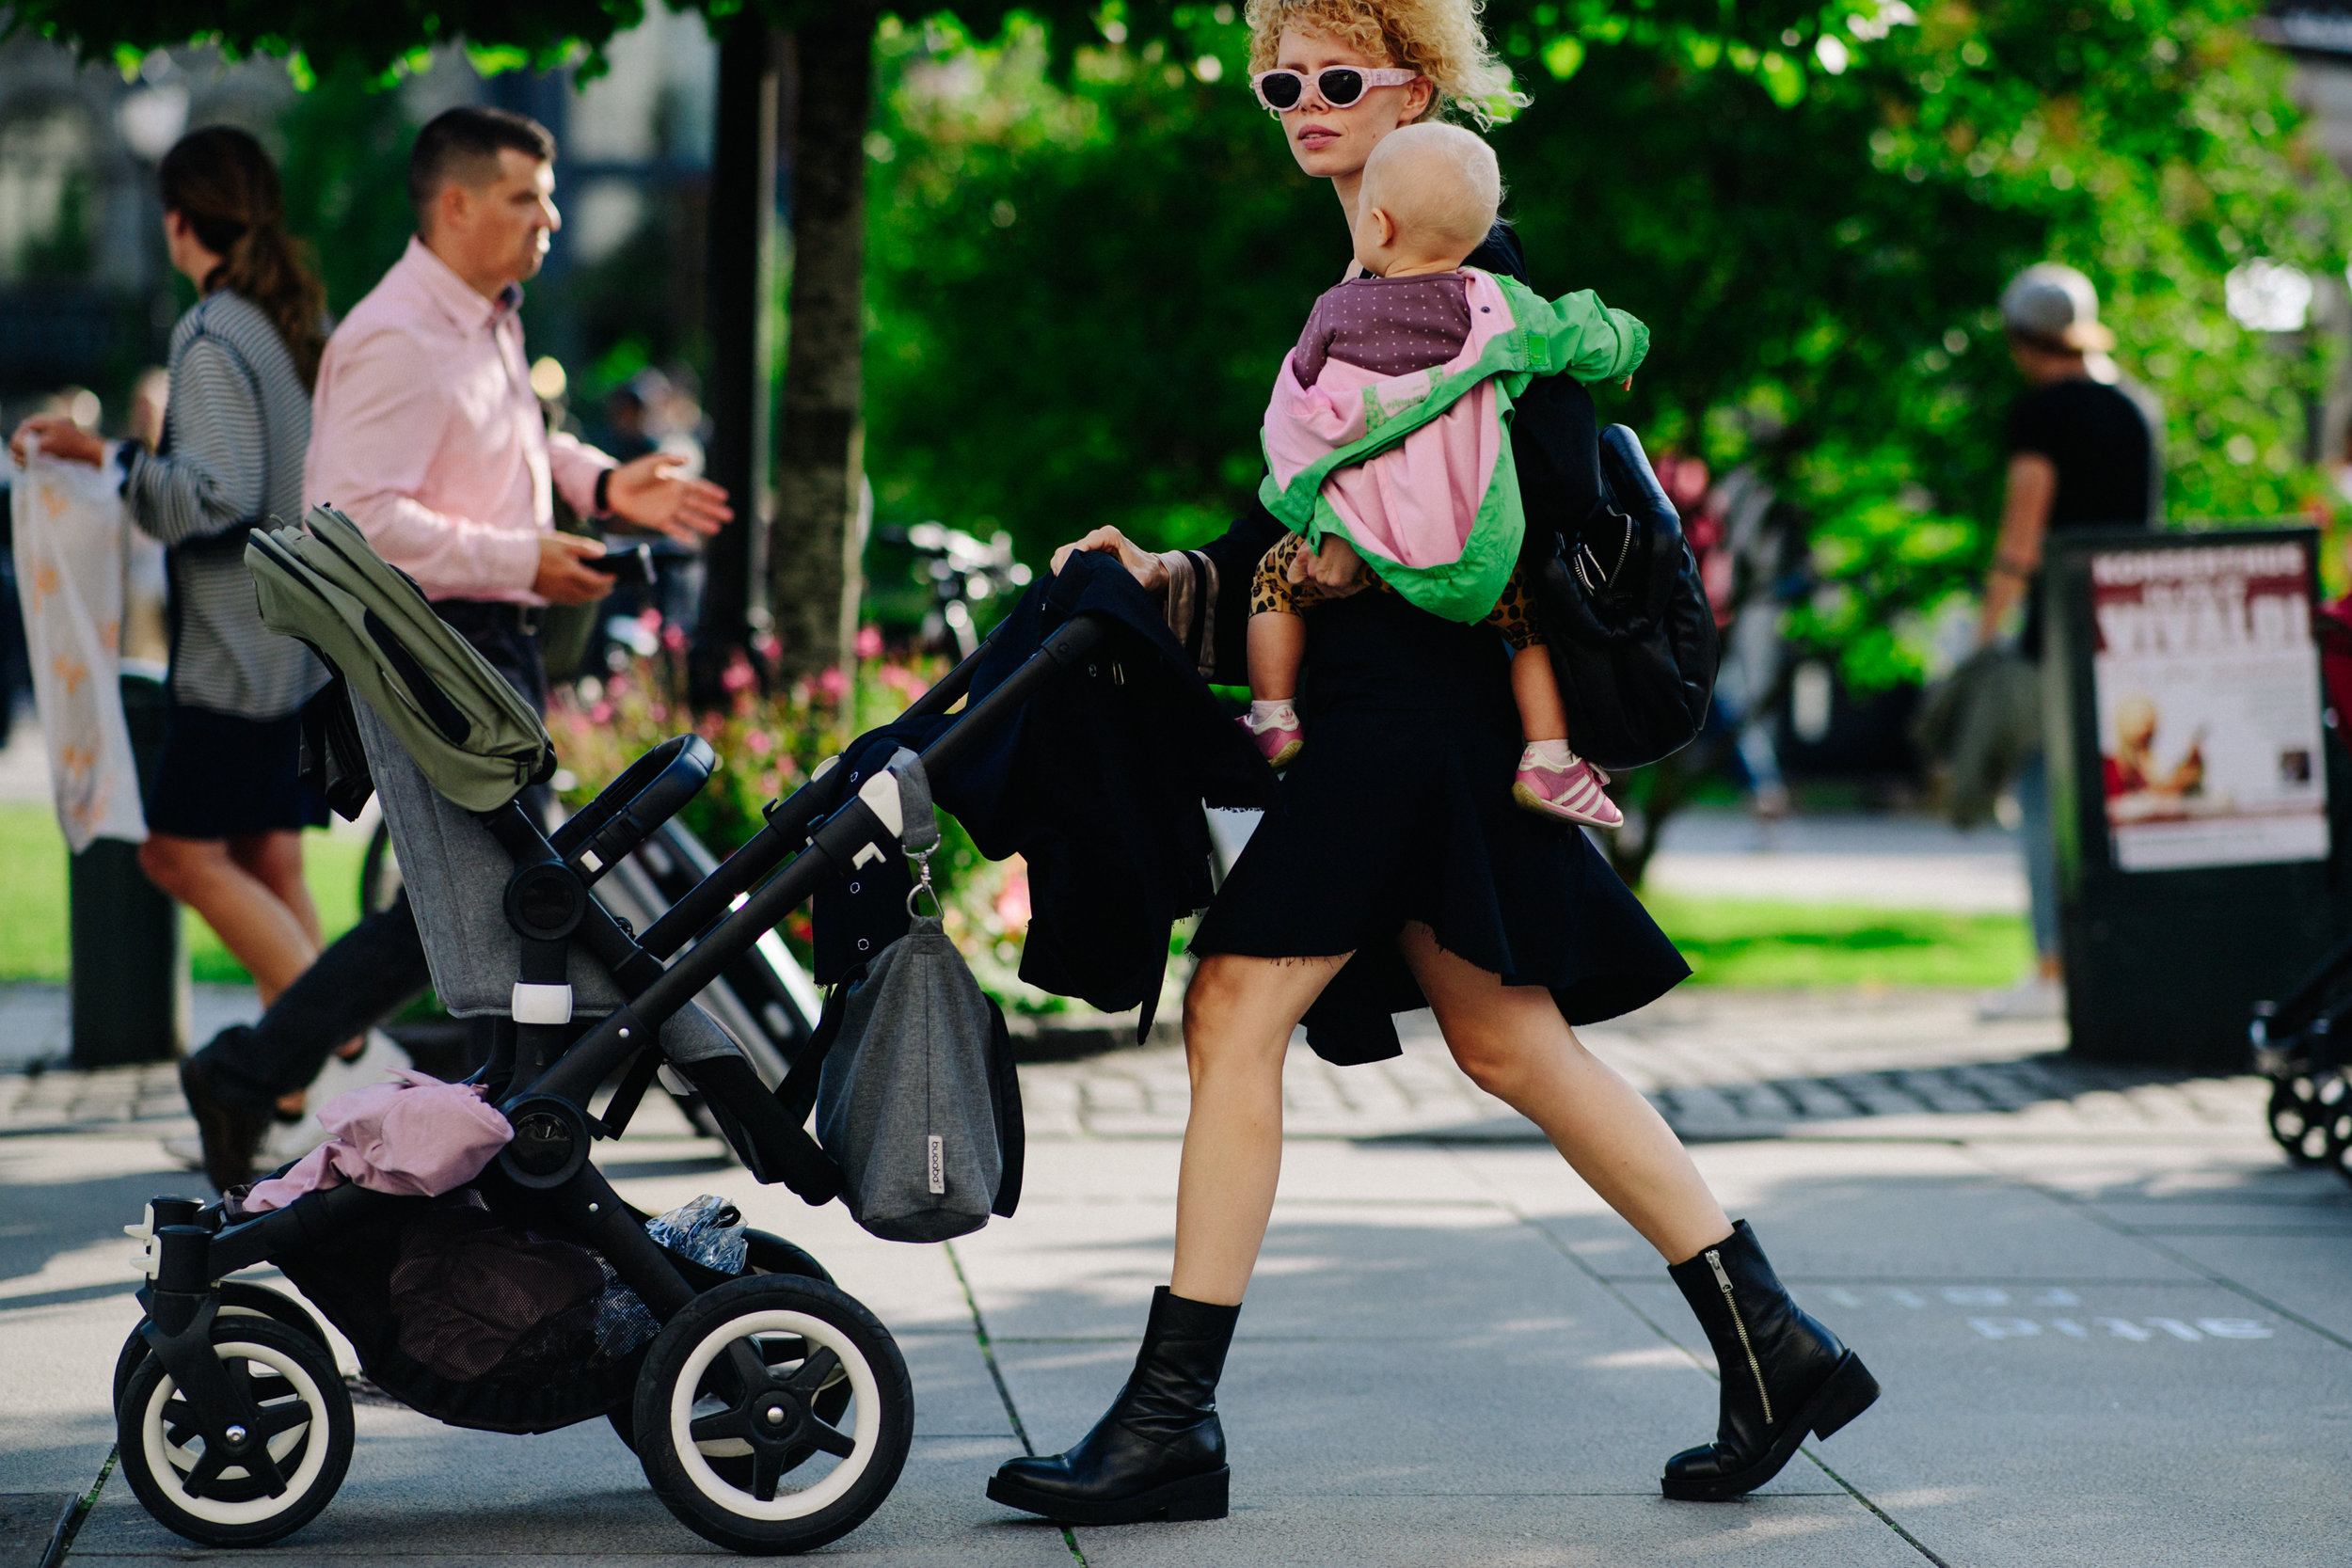 Photo by Adam Katz Sinding for W Magazine.   Wearing H&M and a Bugaboo stroller